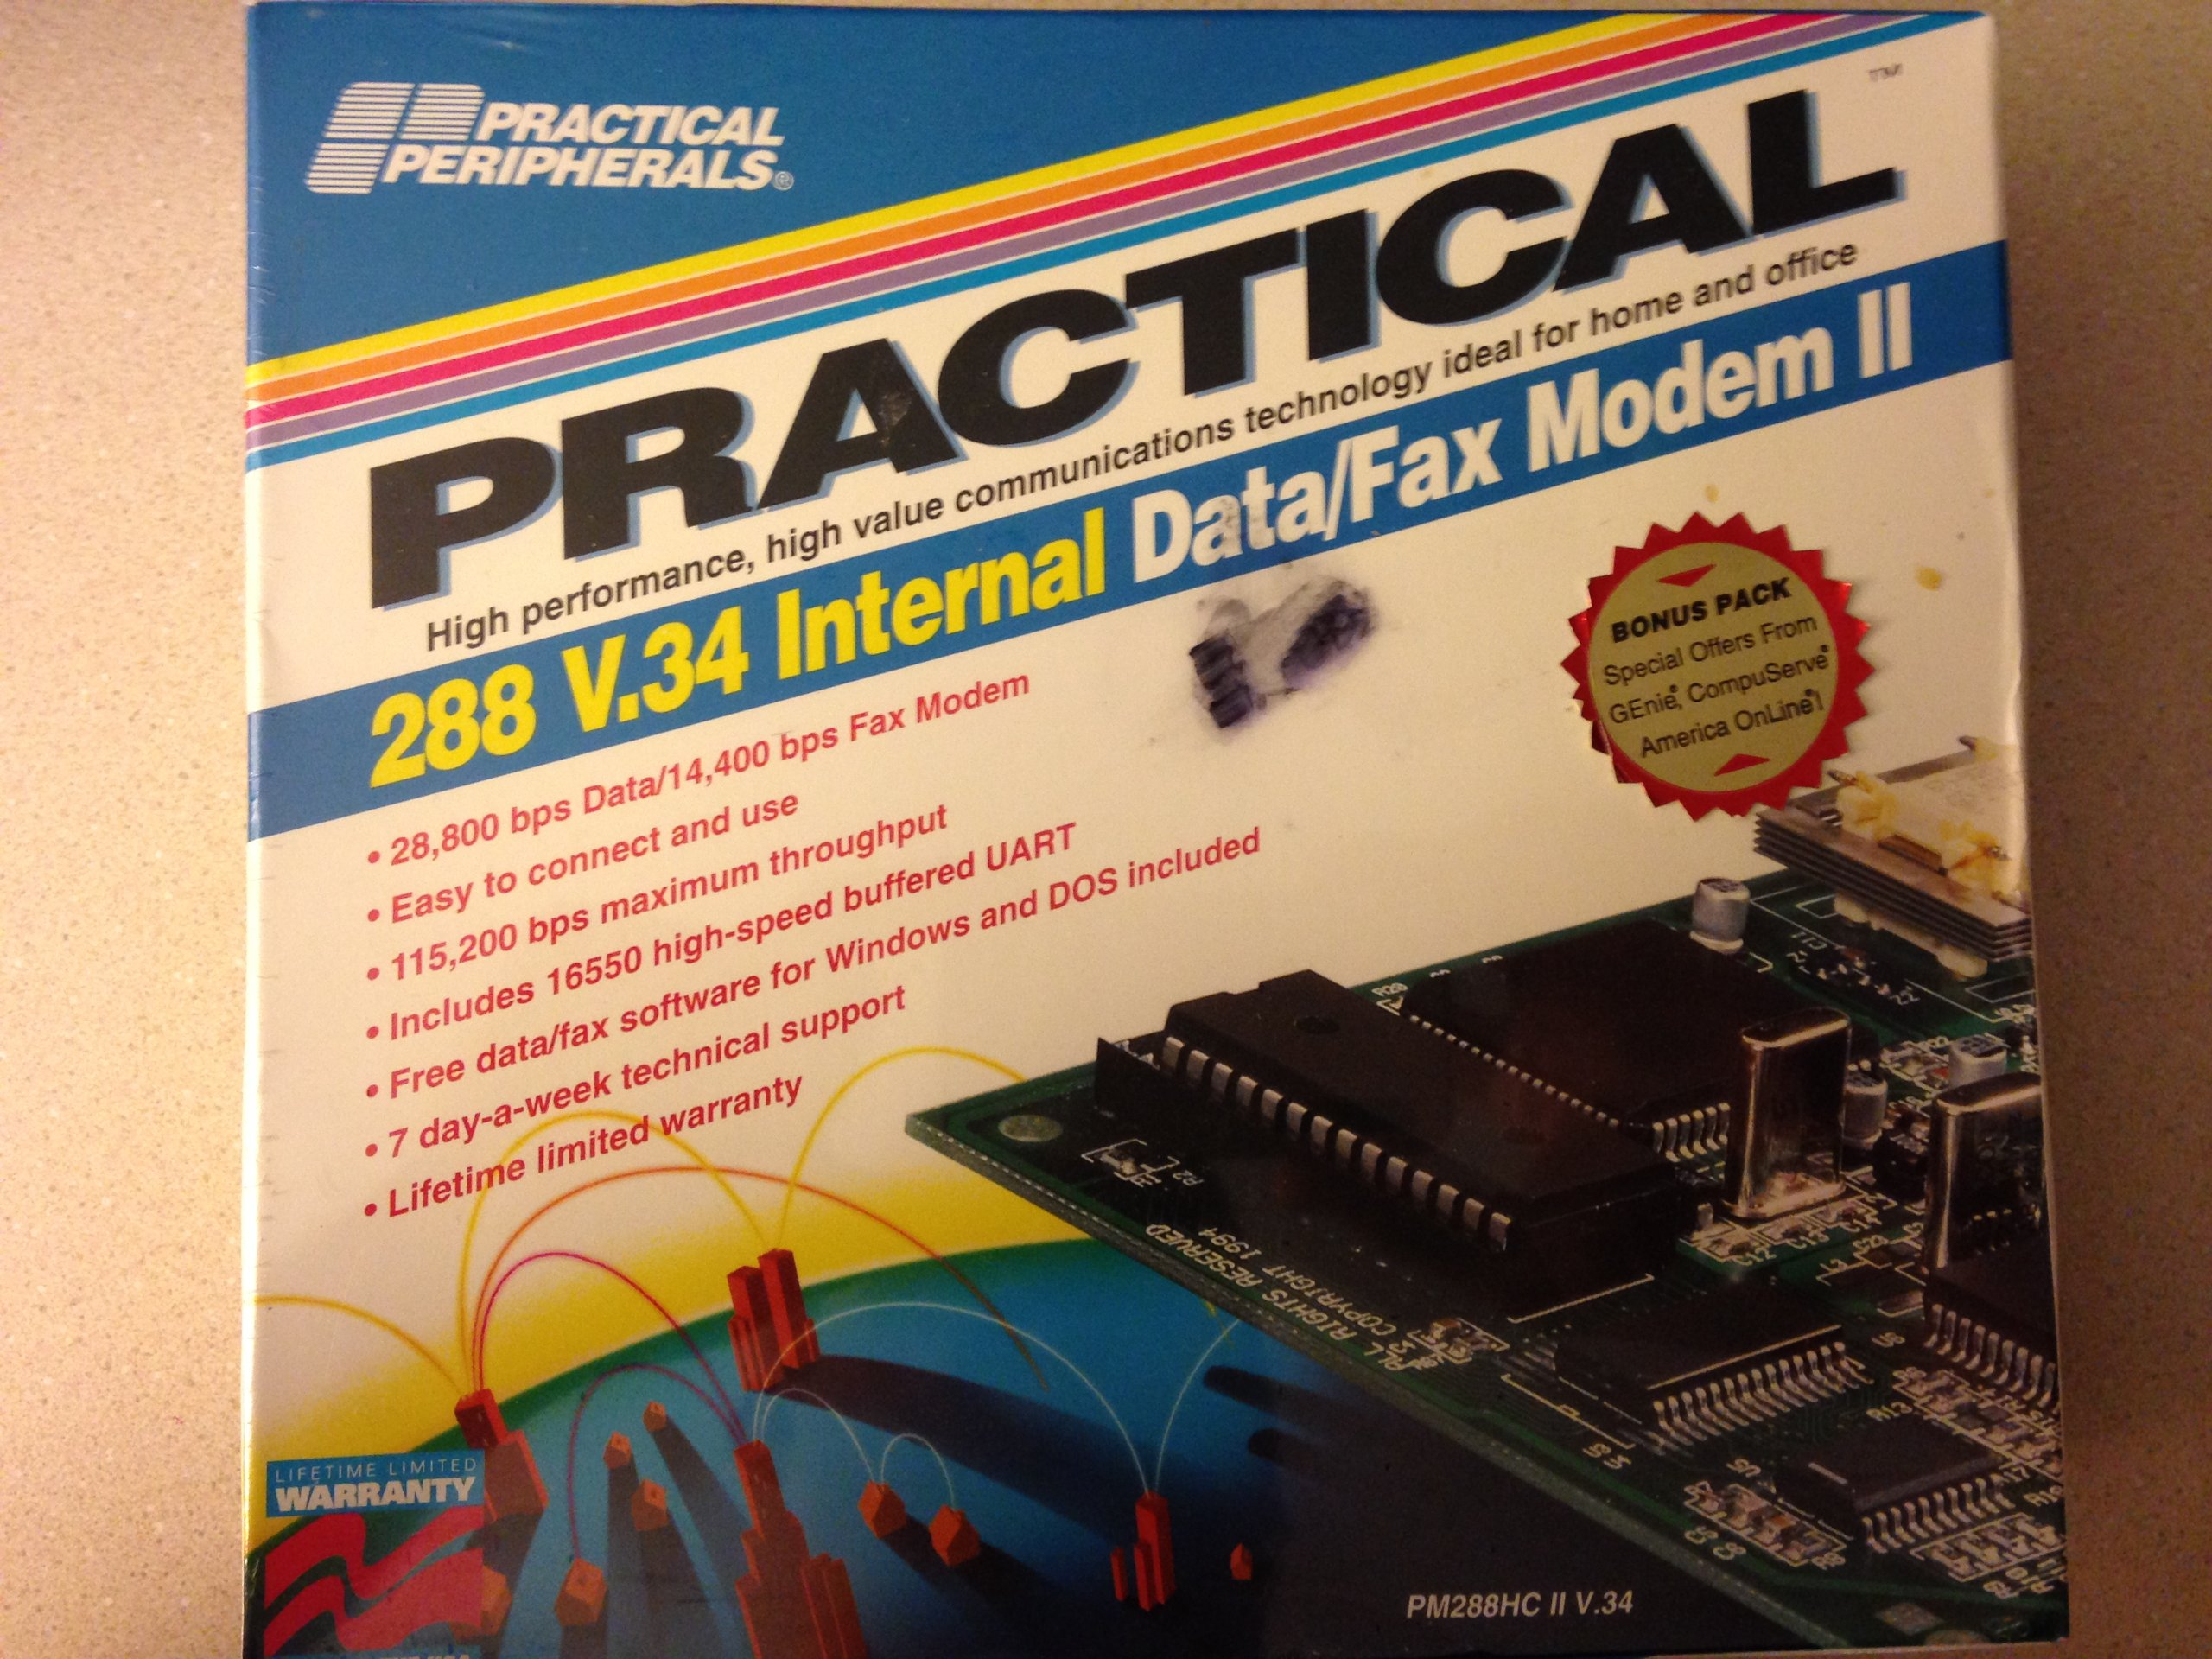 Practical Peripherals 288 V.34 Internal Data / Fax Modem 2 by Practical Peripherals, Inc. (Image #1)